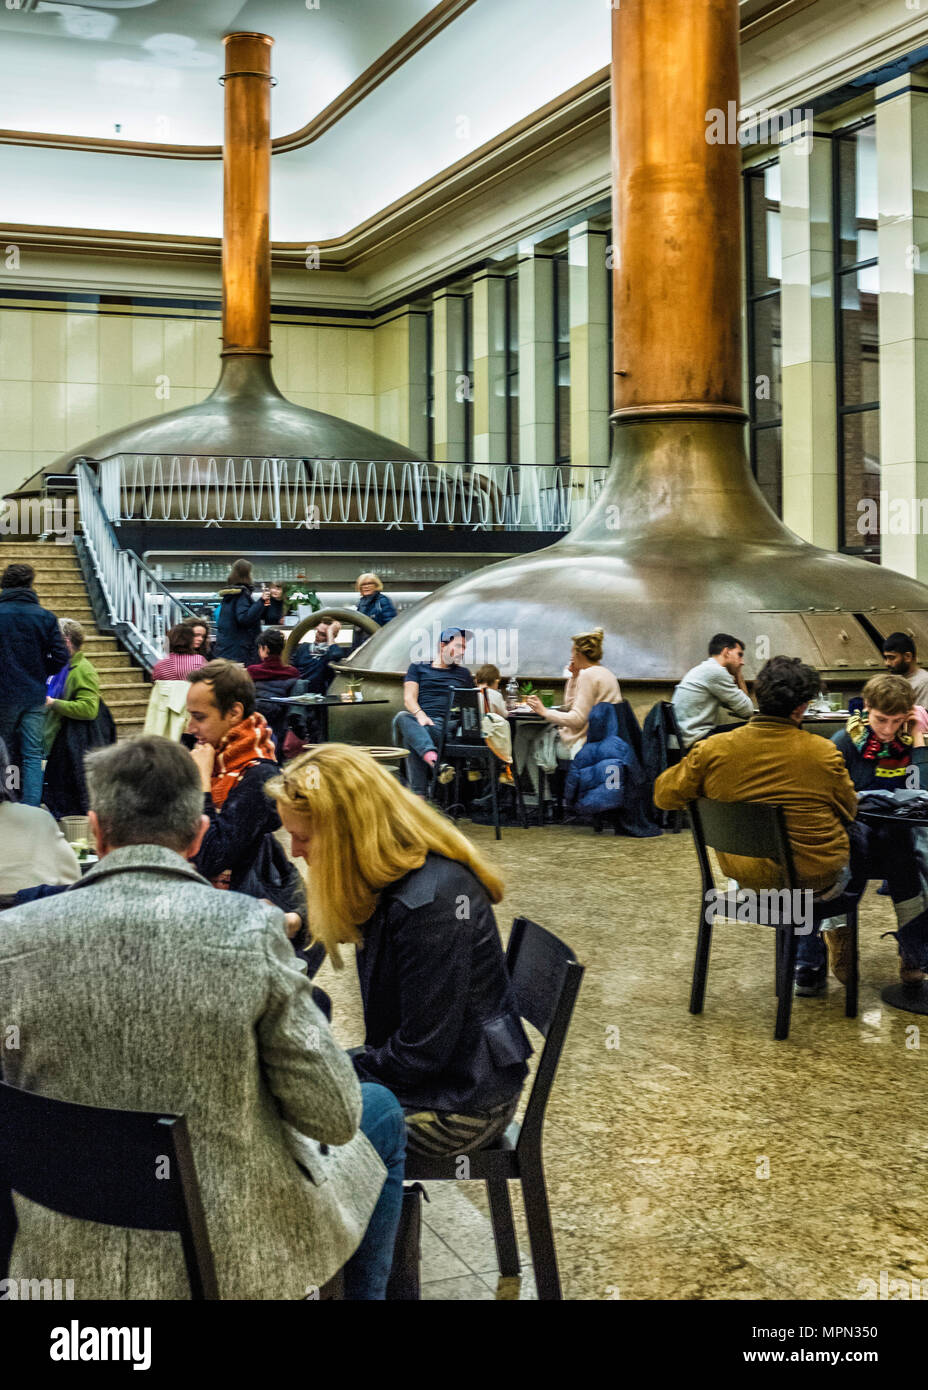 Berlin Neukölln. König Otto Cafe in KINDL Centre for Contemporary Art in brew house of former Kindl Brewery Building.                                  - Stock Image